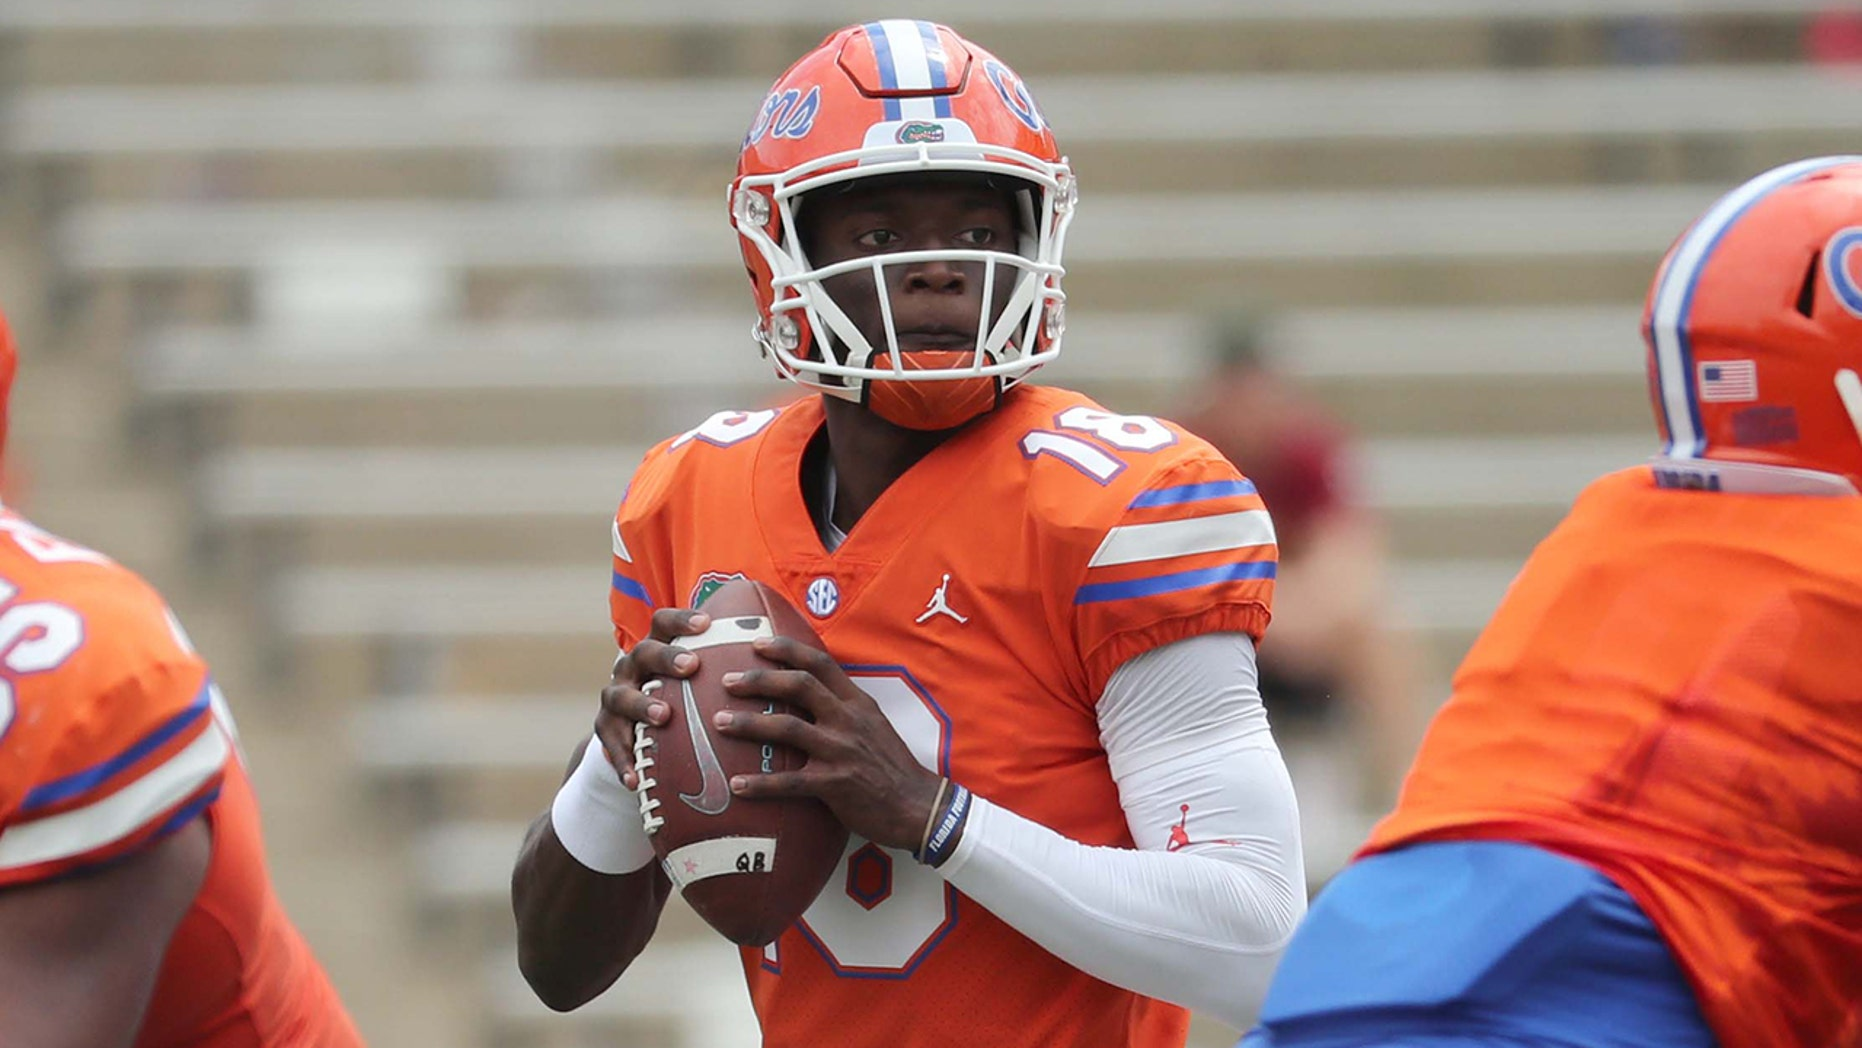 Florida QB Jones accused of sexual battery